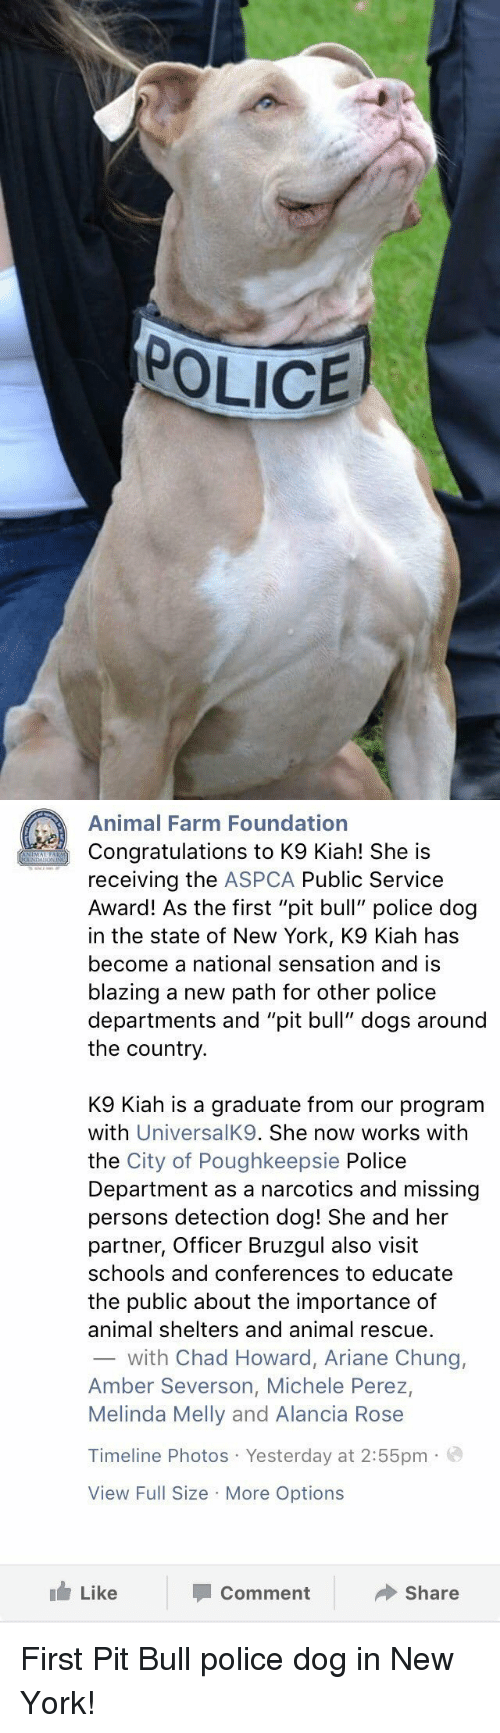 "Aspca: POLICE   Animal Farm Foundation  Congratulations to K9 Kiah! She is  receiving the  ASPCA Public Service  Award! As the first ""pit bull"" police dog  in the state of New York, K9 Kiah has  become a national sensation and is  blazing a new path for other police  departments and ""pit bull"" dogs around  the country  K9 Kiah is a graduate from our program  with  UniversalK9. She now works with  the City of Poughkeepsie Police  Department as a narcotics and missing  persons detection dog! She and her  partner, Officer Bruzgul also visit  schools and conferences to educate  the public about the importance of  animal shelters and animal rescue.  with Chad Howard, Ariane Chung,  Amber Severson, Michele Perez,  Melinda Melly and Alancia Rose  Timeline Photos Yesterday at 2:55pm  a  View Full Size More Options  Like  Share  Comment First Pit Bull police dog in New York!"